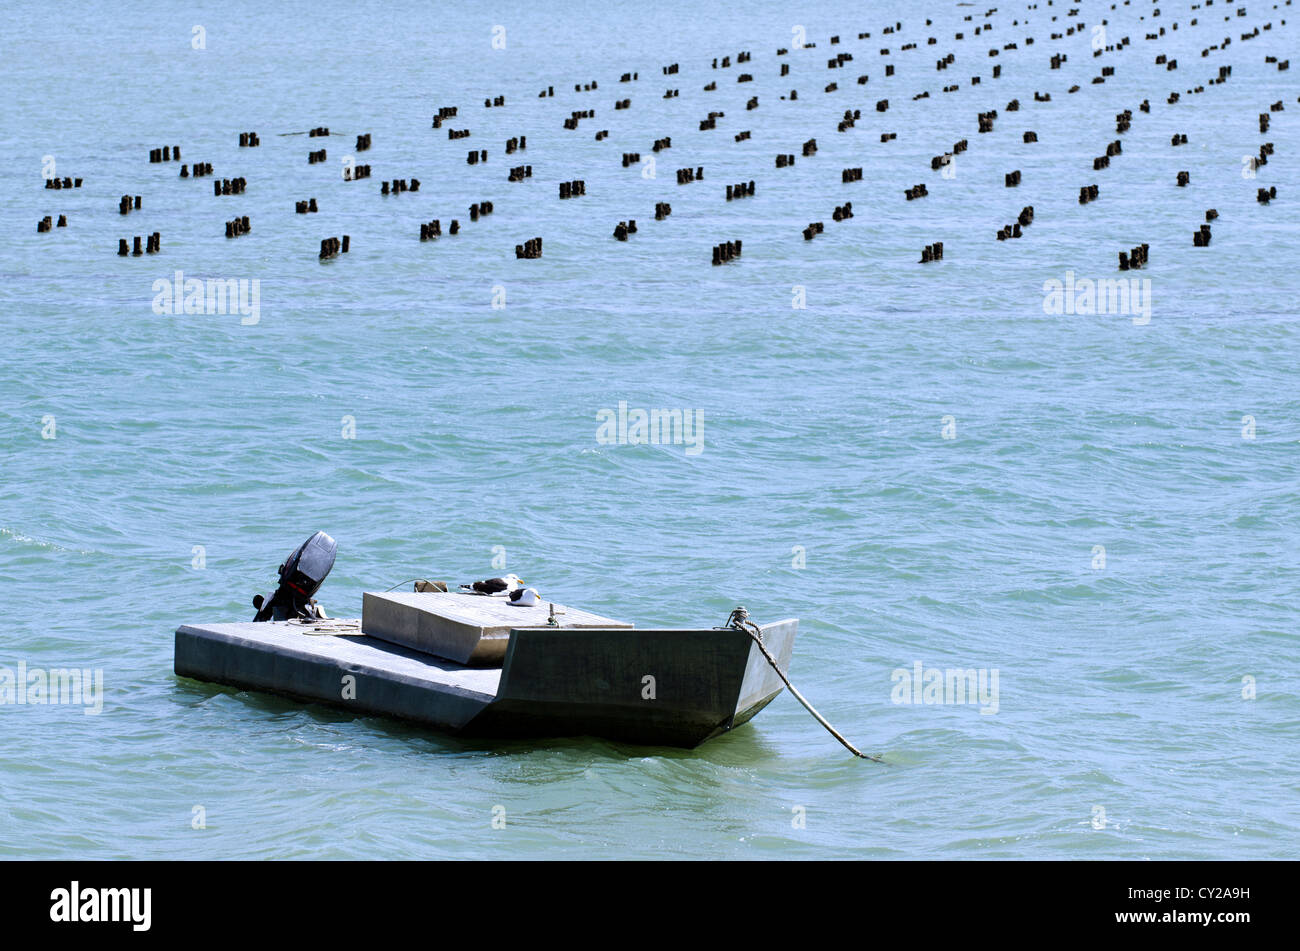 Flat fishing boat in Oyster farm in Northland New Zealand. - Stock Image